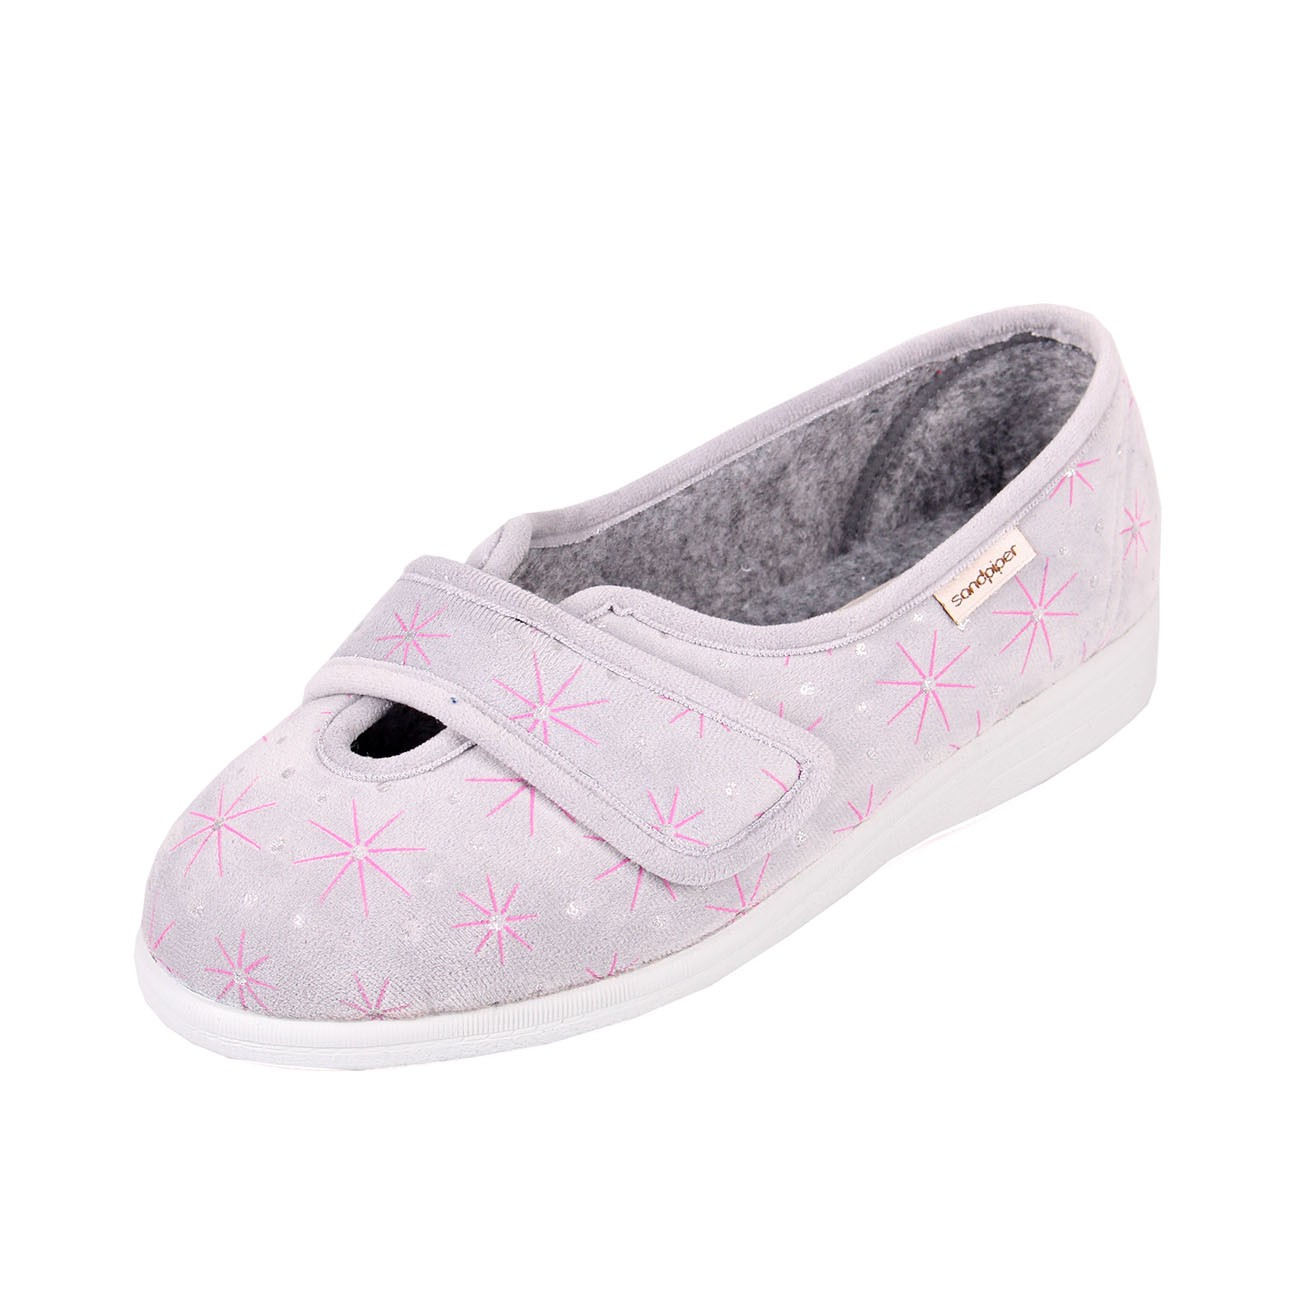 Sadie Sandpiper Grey Ladies Slipper and ladies wider fitting slippers